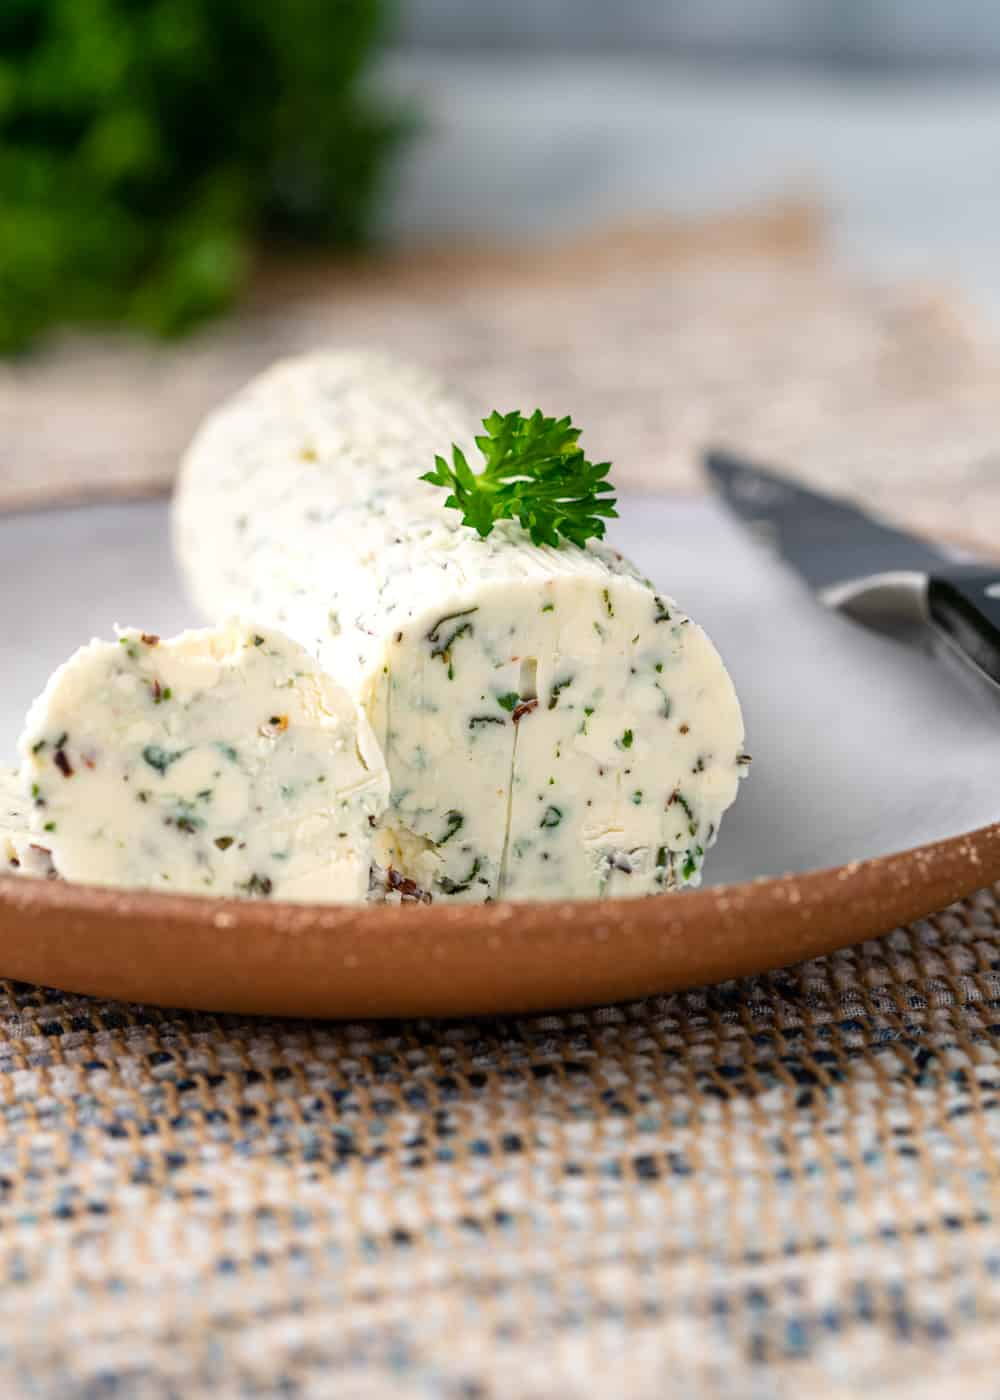 small plate of Gorgonzola butter: compound butter with fresh herbs and blue cheese